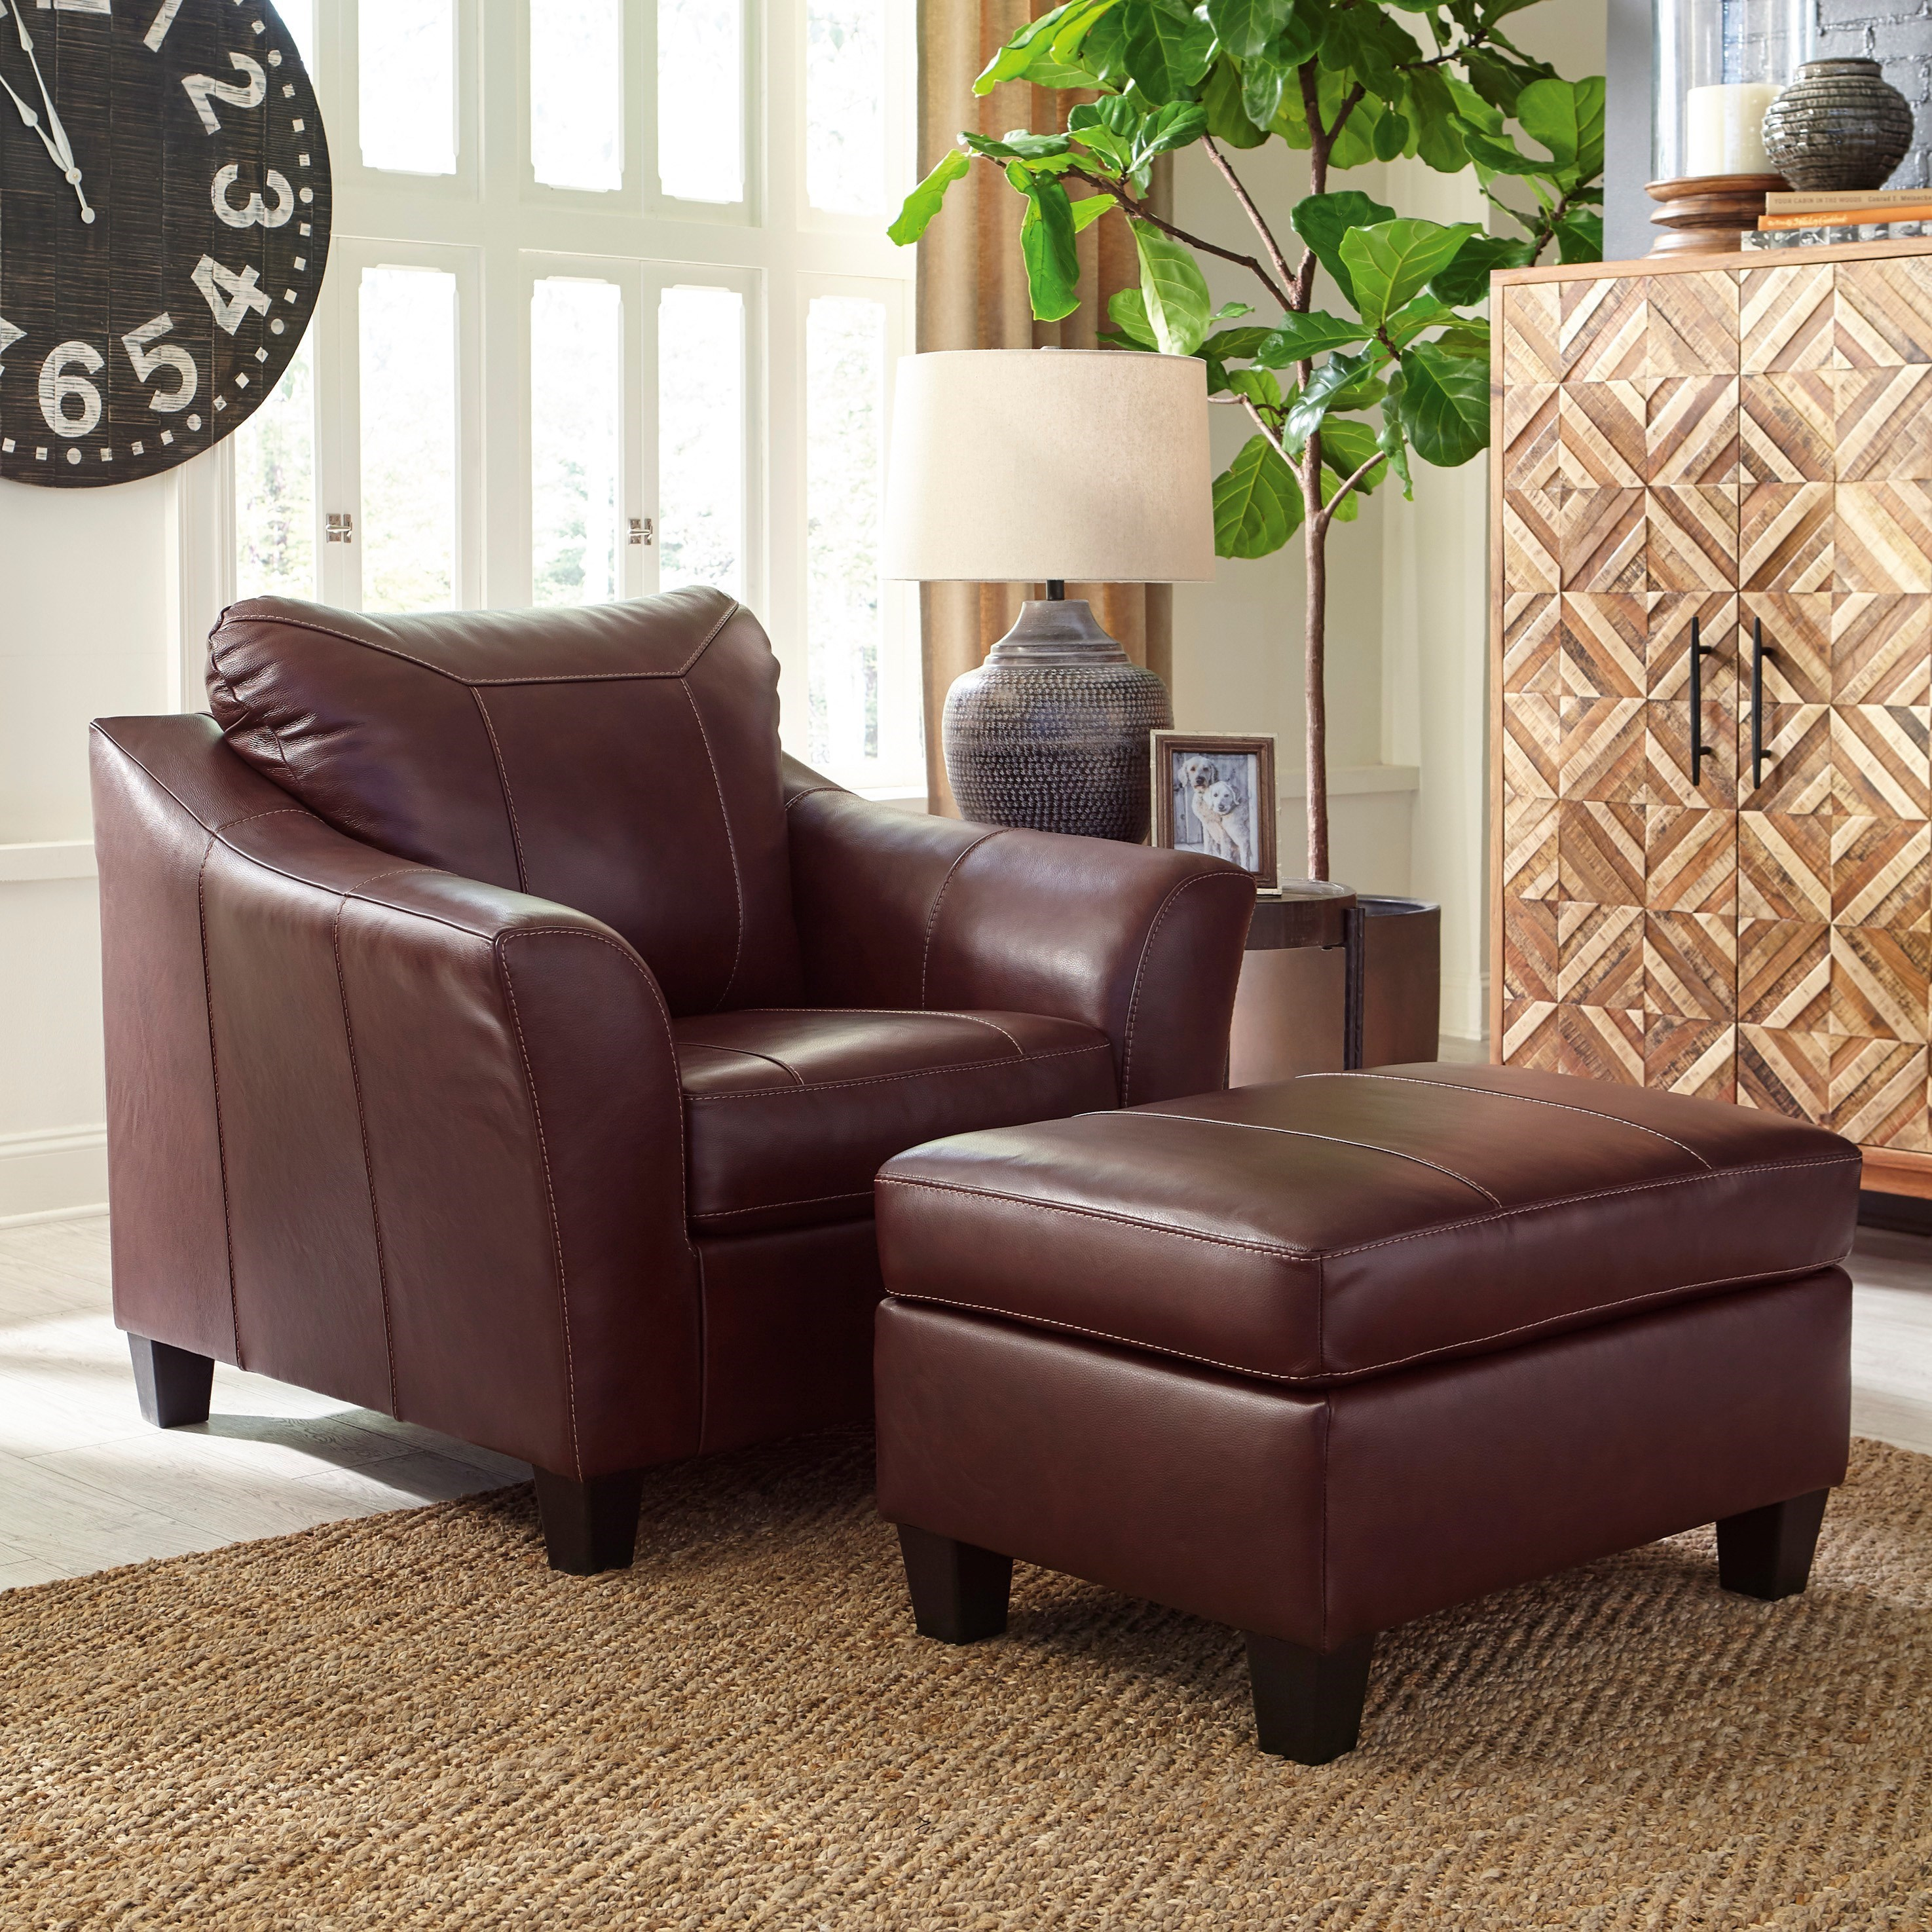 Fortney Chair and Ottoman Set by Signature at Walker's Furniture